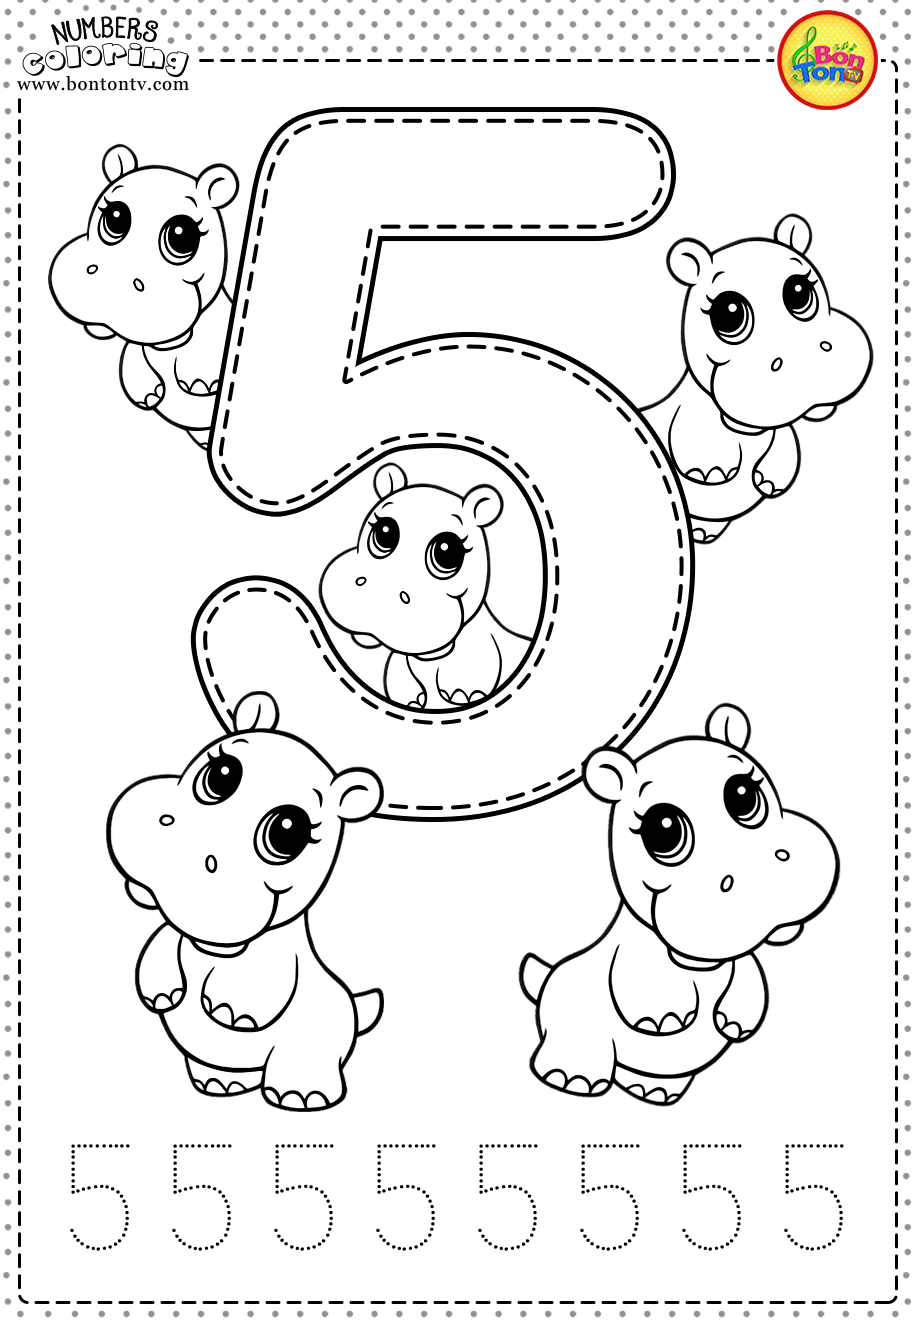 Number 5 Preschool Printables Free Worksheets And Coloring Pages Number5 Number In 2020 Free Preschool Printables Kids Learning Numbers Preschool Math Worksheets